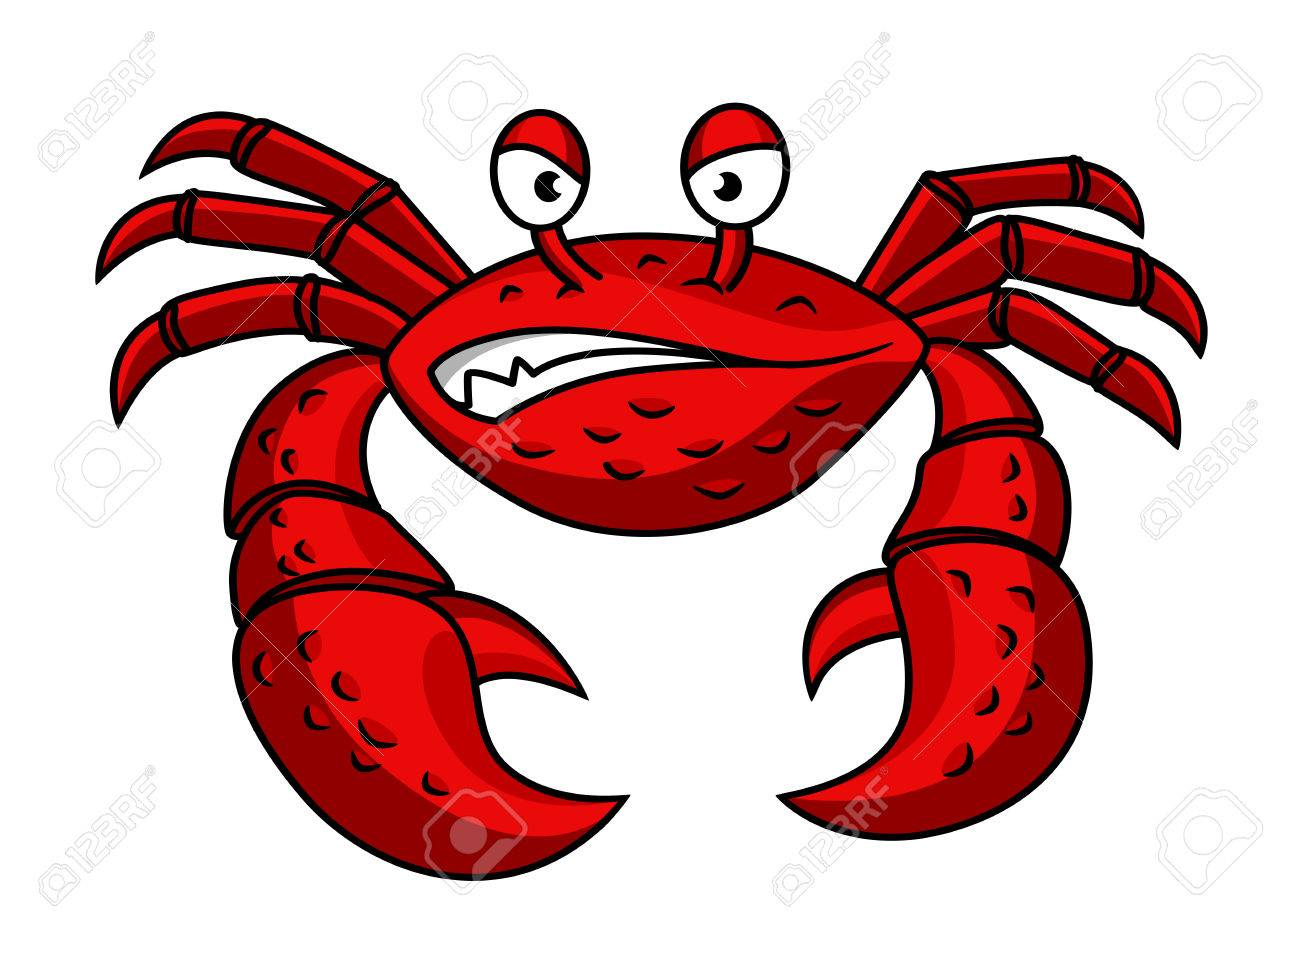 Cartoon red crab characterwith angry emotions isolated on white.